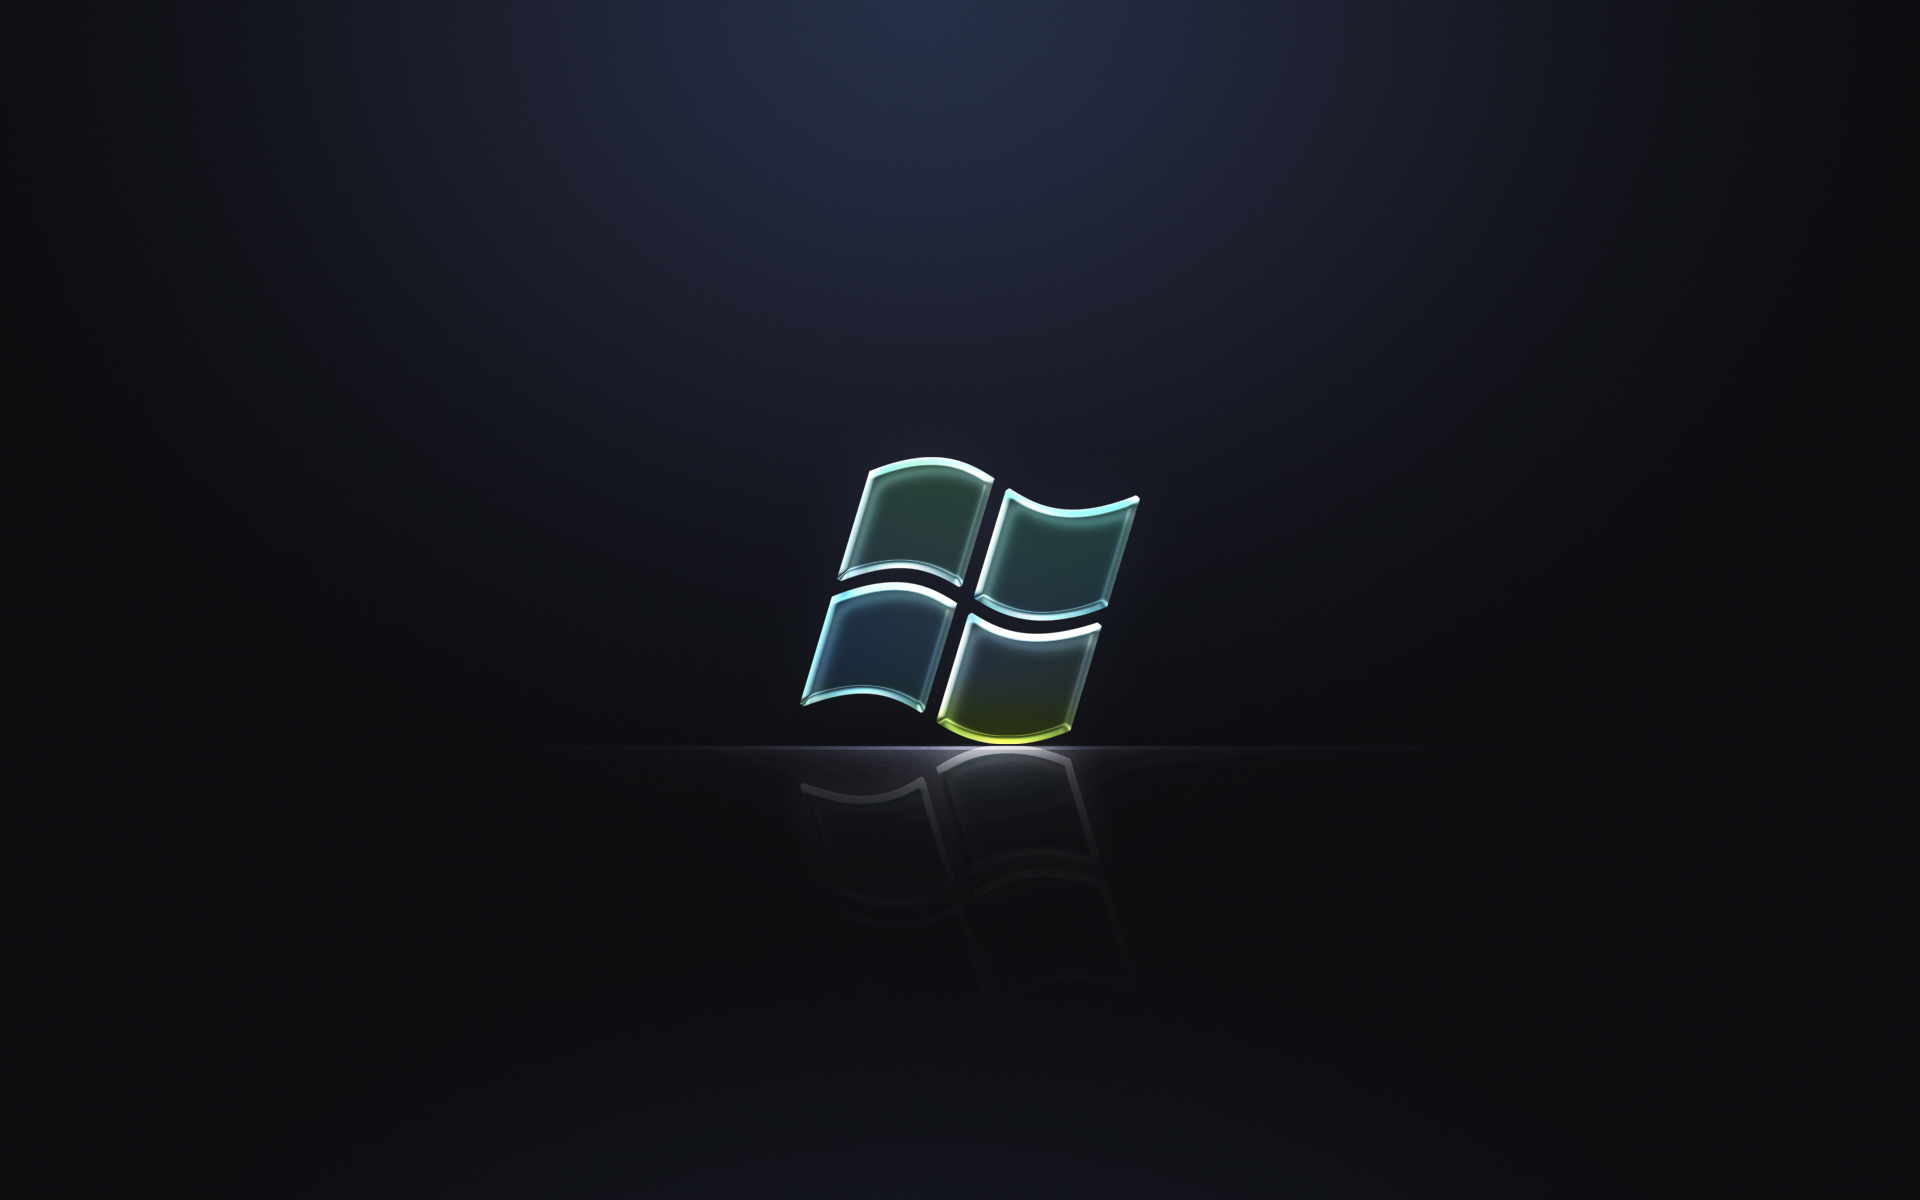 Windows Windows Phone Logo Wallpaper 壁紙 Reflect